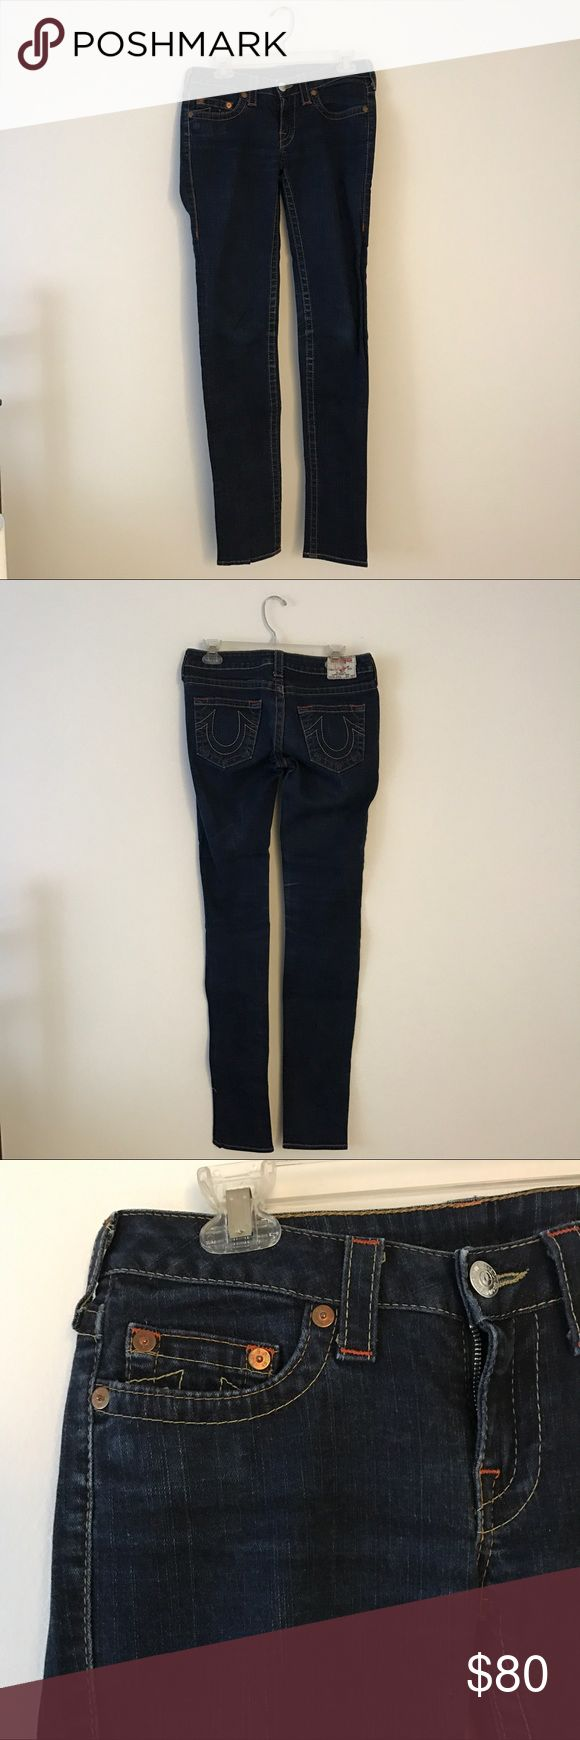 True Religion True Religion super skinny denim long jeans. Stella style. Size 28. Dark denim. In very good condition. No signs of wear or tear. No trades please. For sale only. Thank you and happy shopping! True Religion Jeans Skinny